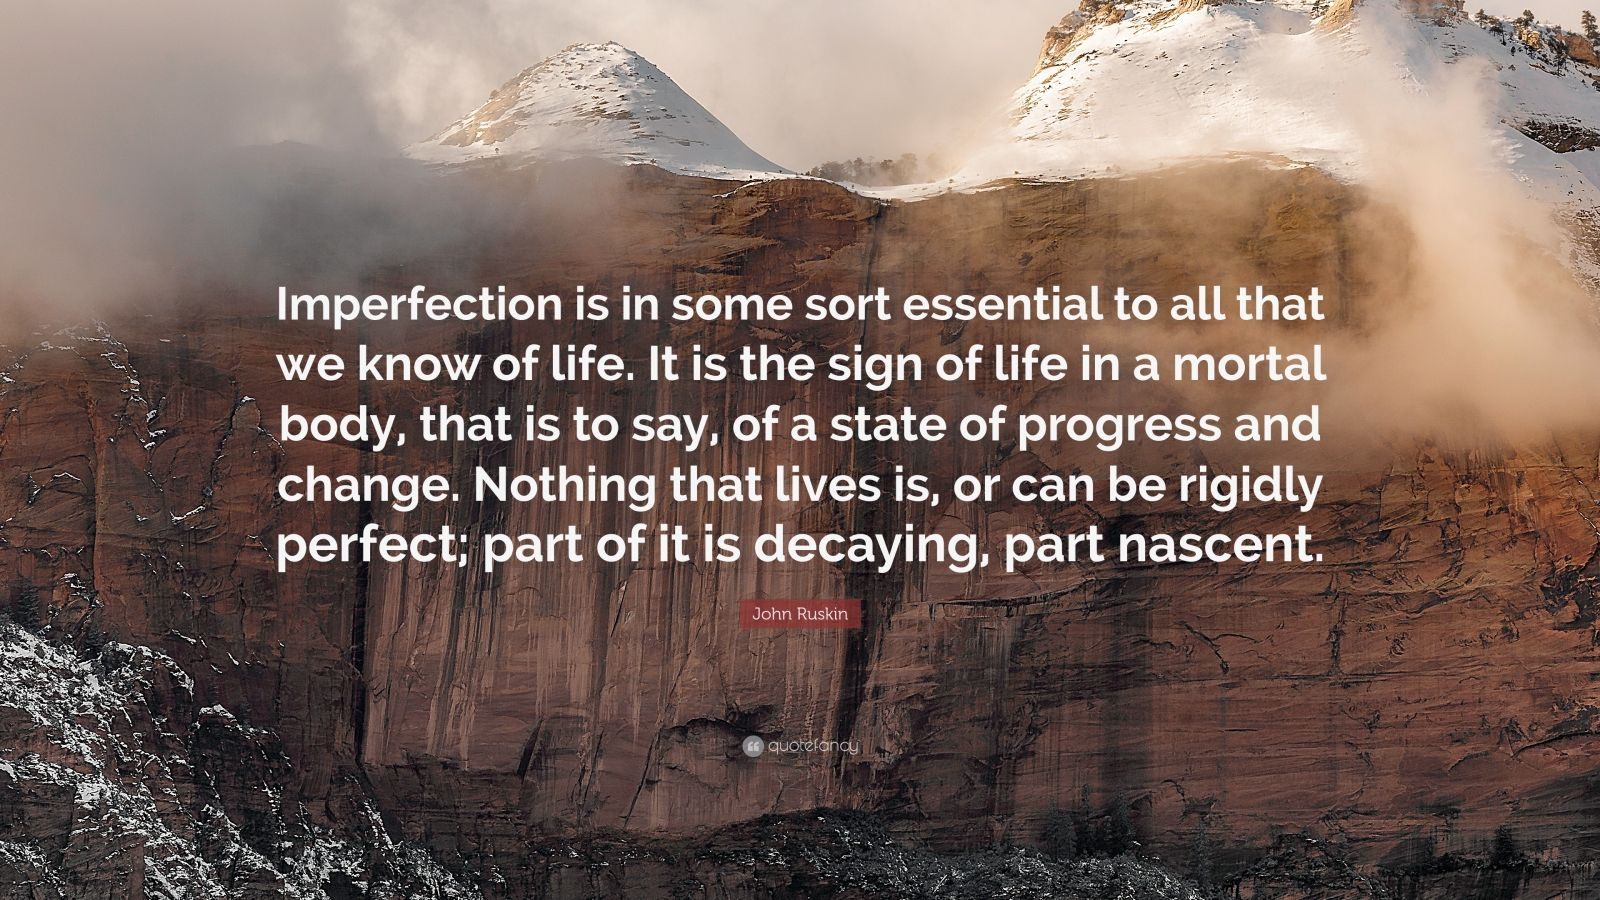 """John Ruskin Quote: """"Imperfection is in some sort essential to all that we know of life. It is the sign of life in a mortal body, that is to say, of a state of progress and change. Nothing that lives is, or can be rigidly perfect; part of it is decaying, part nascent."""""""